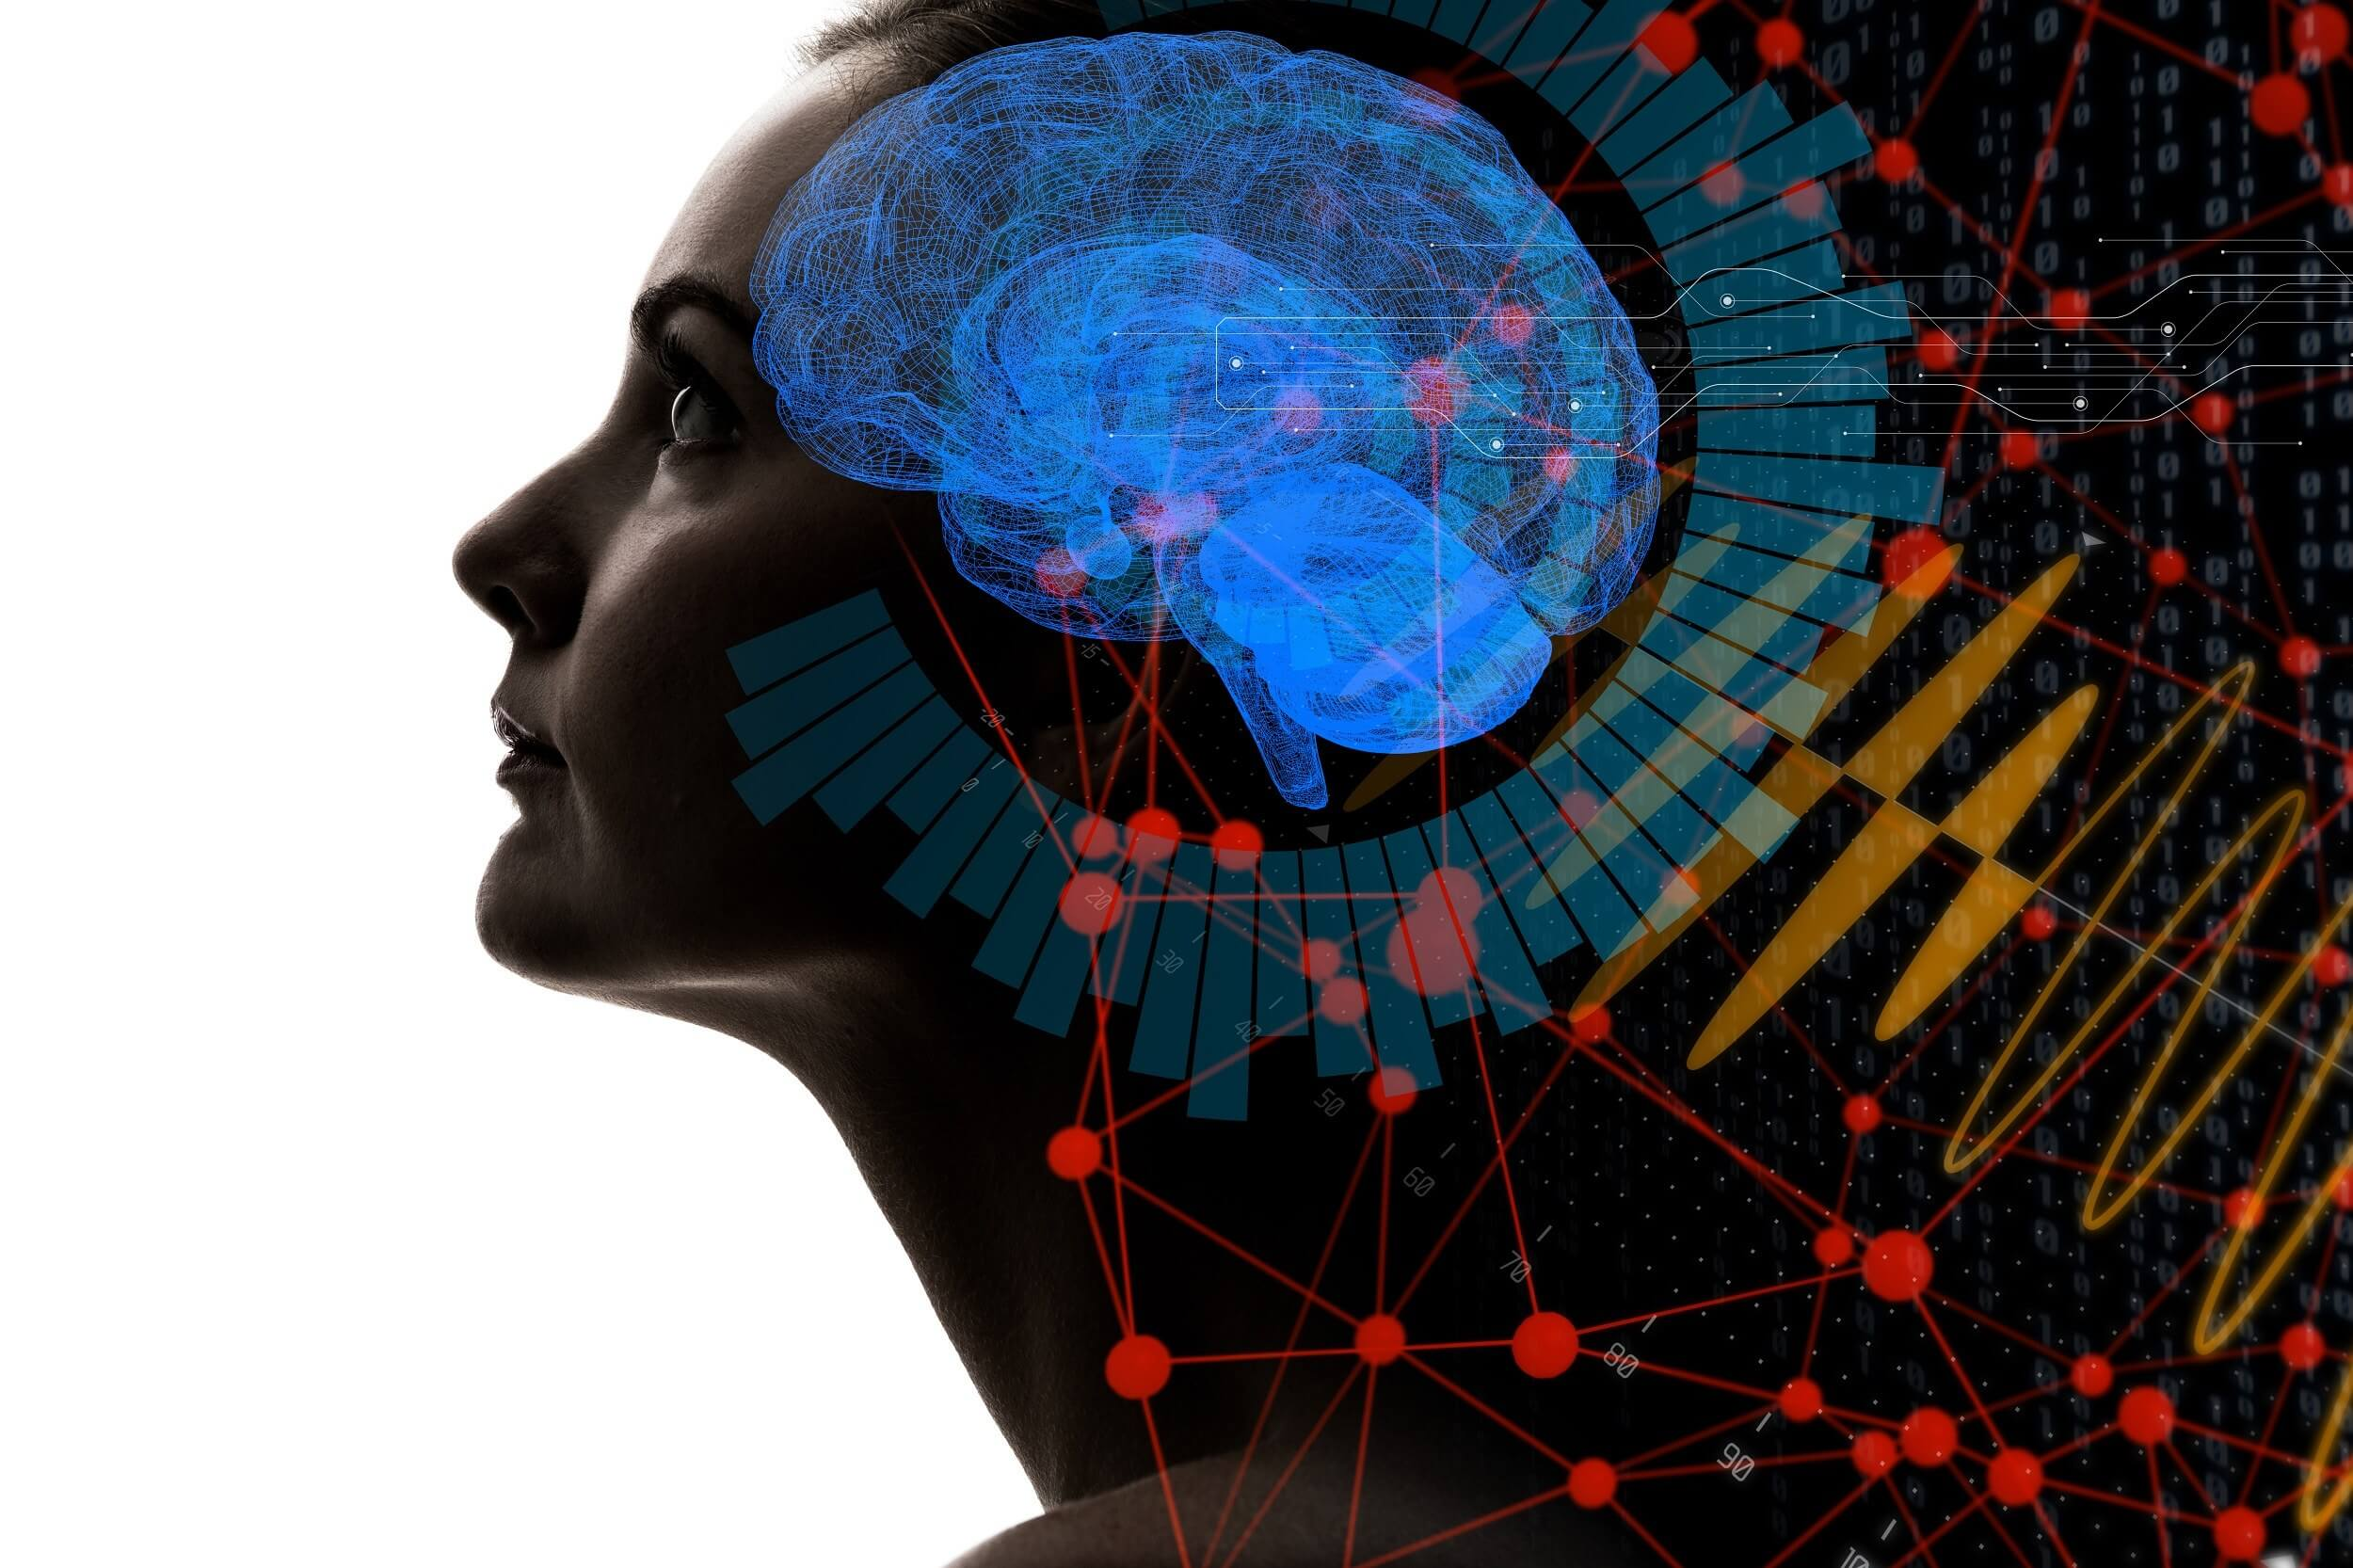 Scientists connect three people's brains together in 'BrainNet' social network